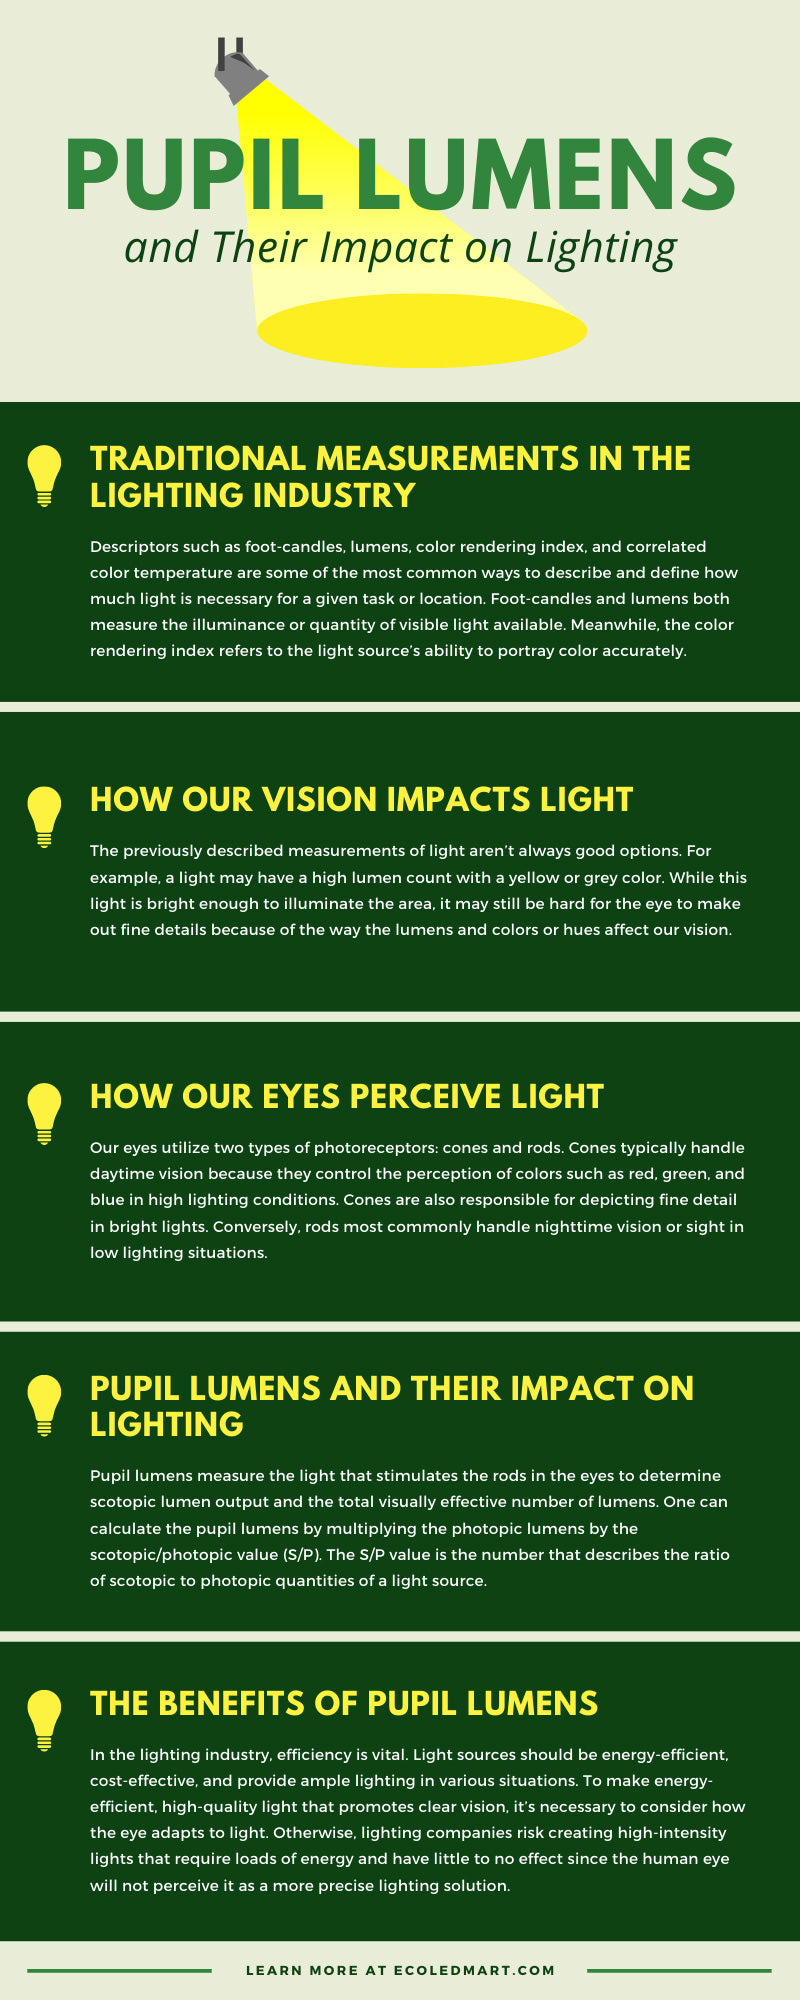 Pupil Lumens and Their Impact on Lighting